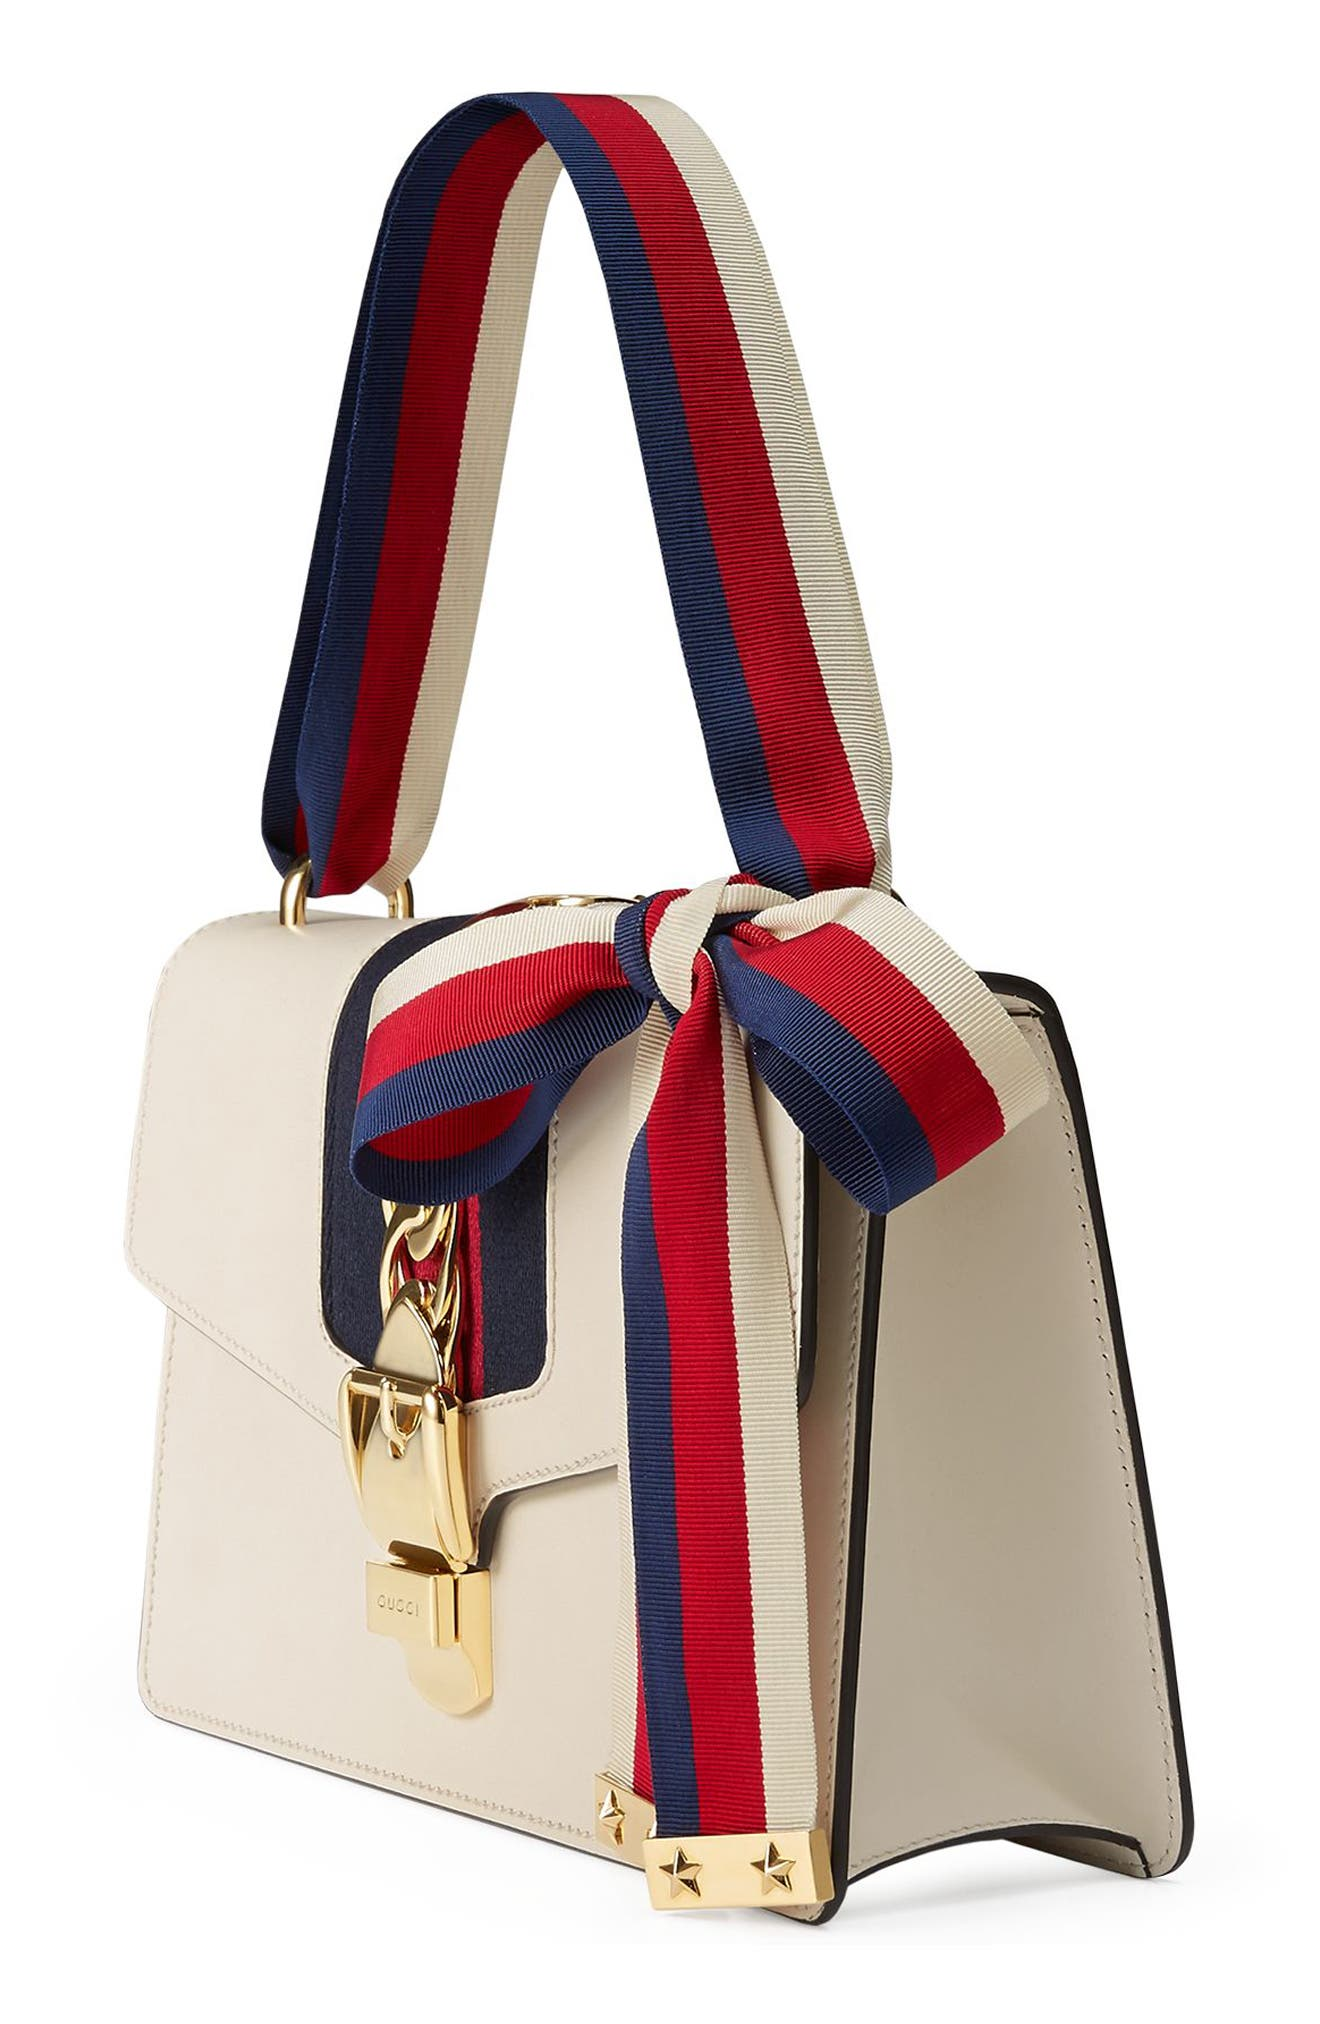 GUCCI, Small Sylvie Leather Shoulder Bag, Alternate thumbnail 4, color, WHITE